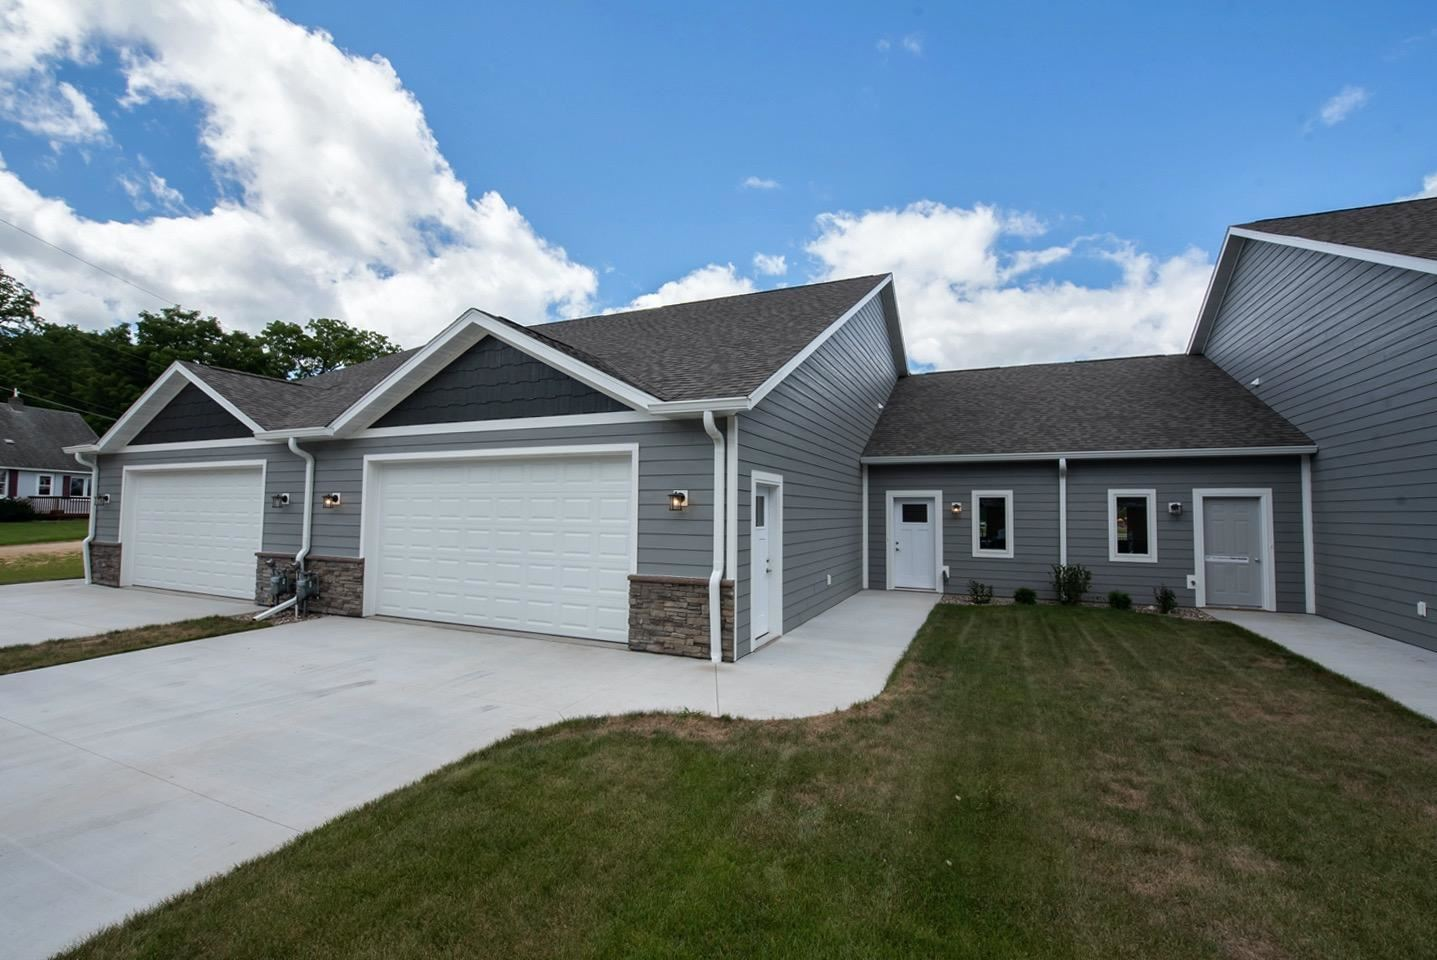 27956 Sundown Lane #A2 UNIT A2, Minnesota City, MN 55959 - MLS#: 5349484